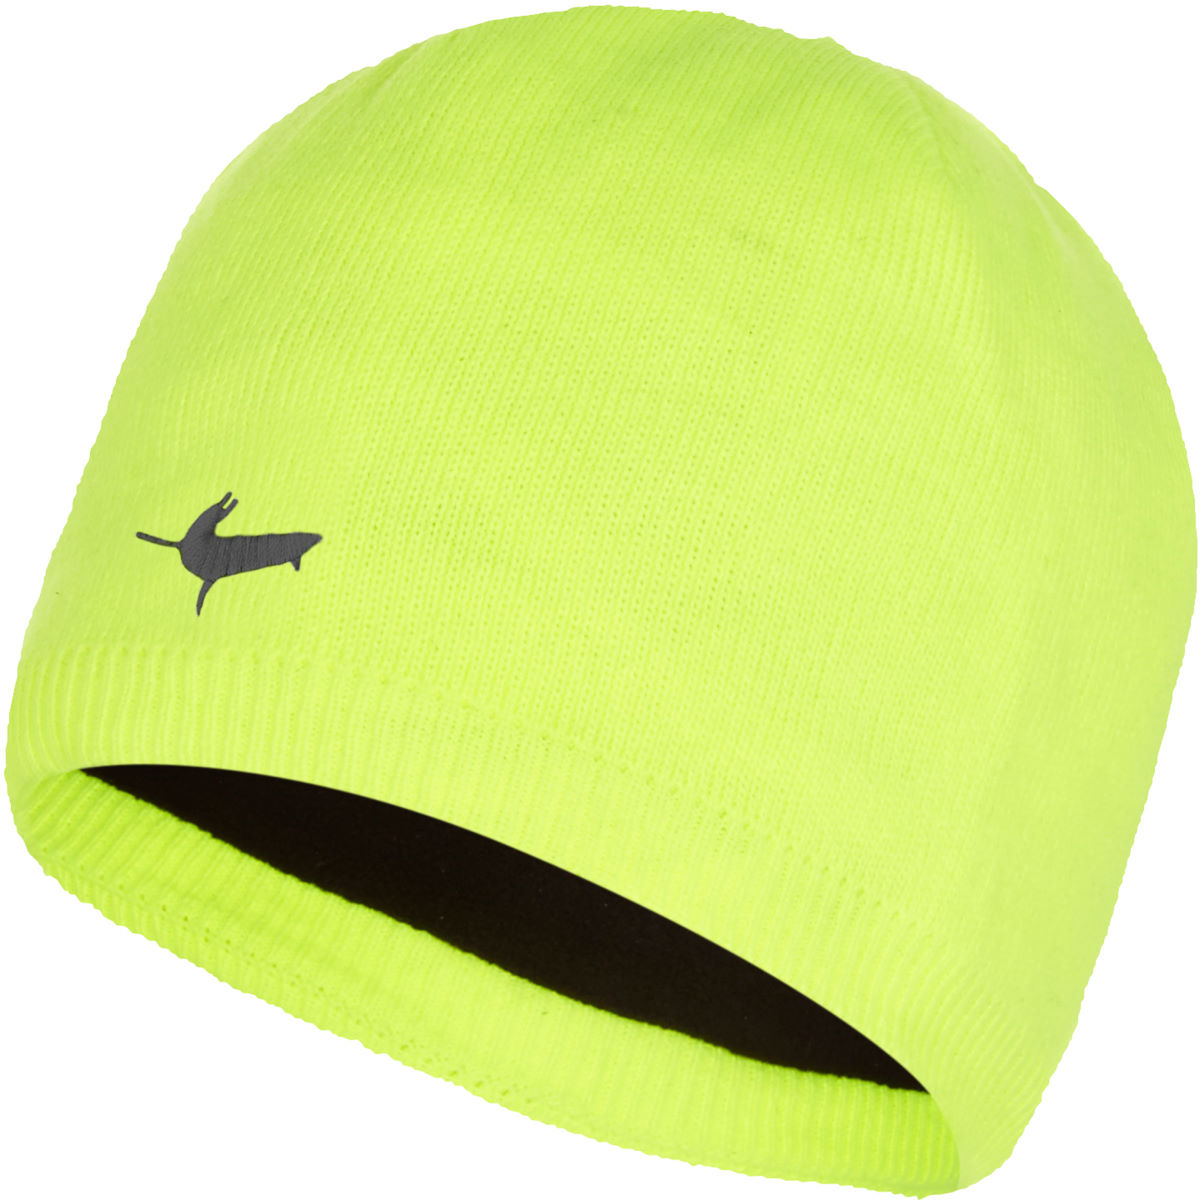 Bonnet SealSkinz Imperméable - 2XL Jaune